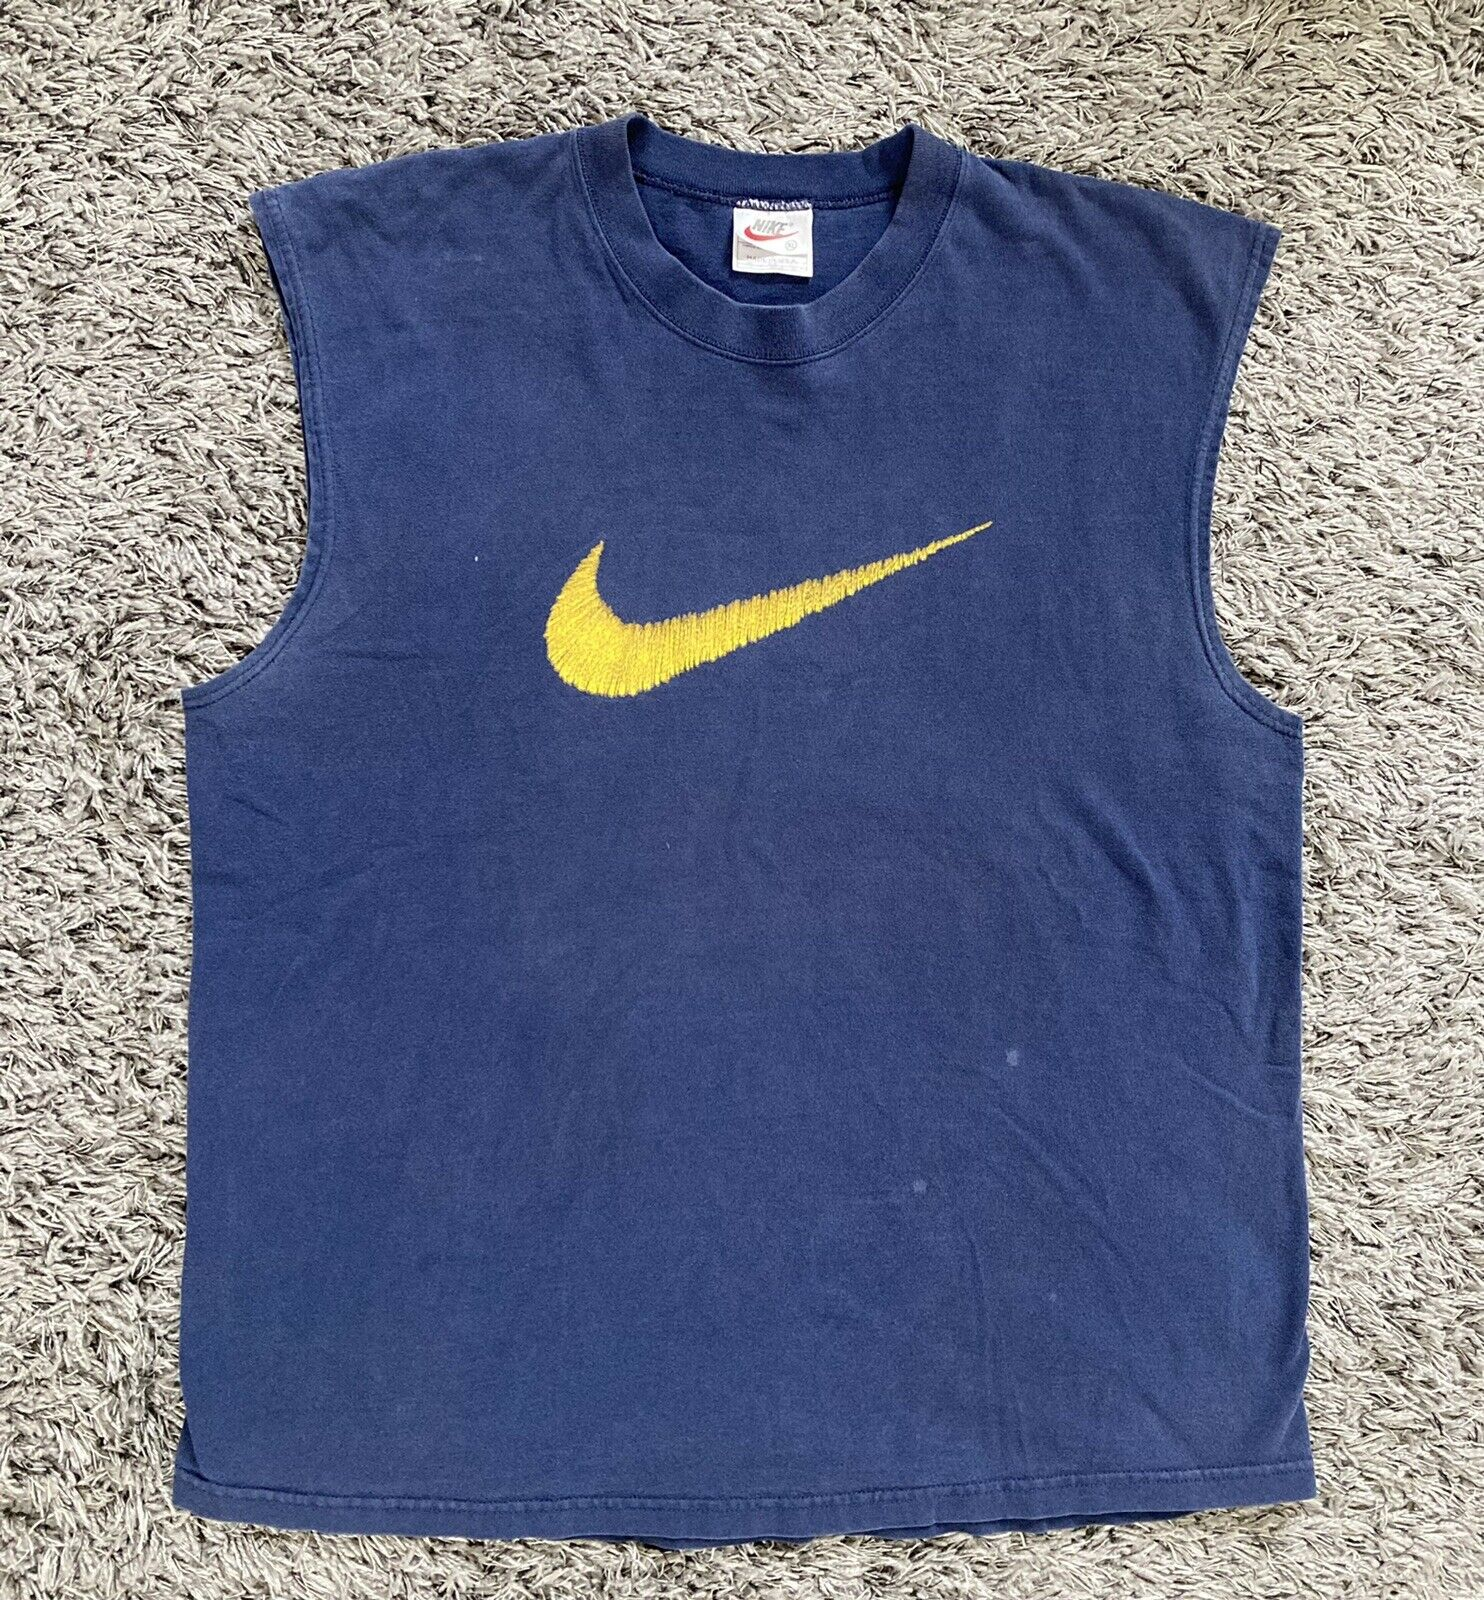 Vintage NIKE Tank Top Cut Off Shirt 1990's Embroidered Look Logo Blue Mens XL